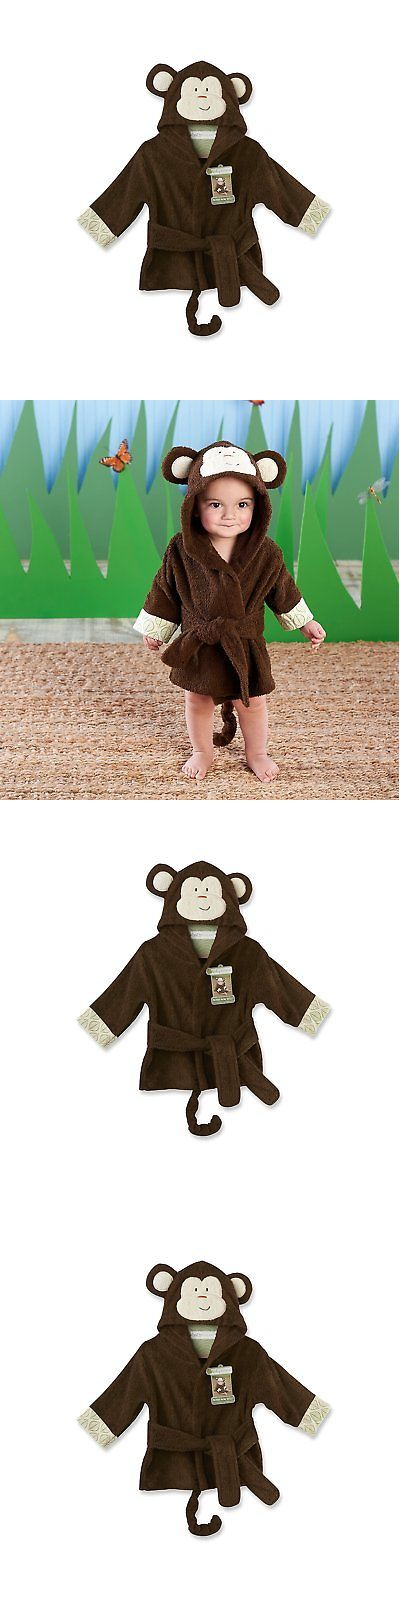 Towels and Washcloths 45453: Baby Aspen Born To Be Wild Monkey Hooded Spa Robe, Brown, 0-9 Months -> BUY IT NOW ONLY: $35.89 on eBay!